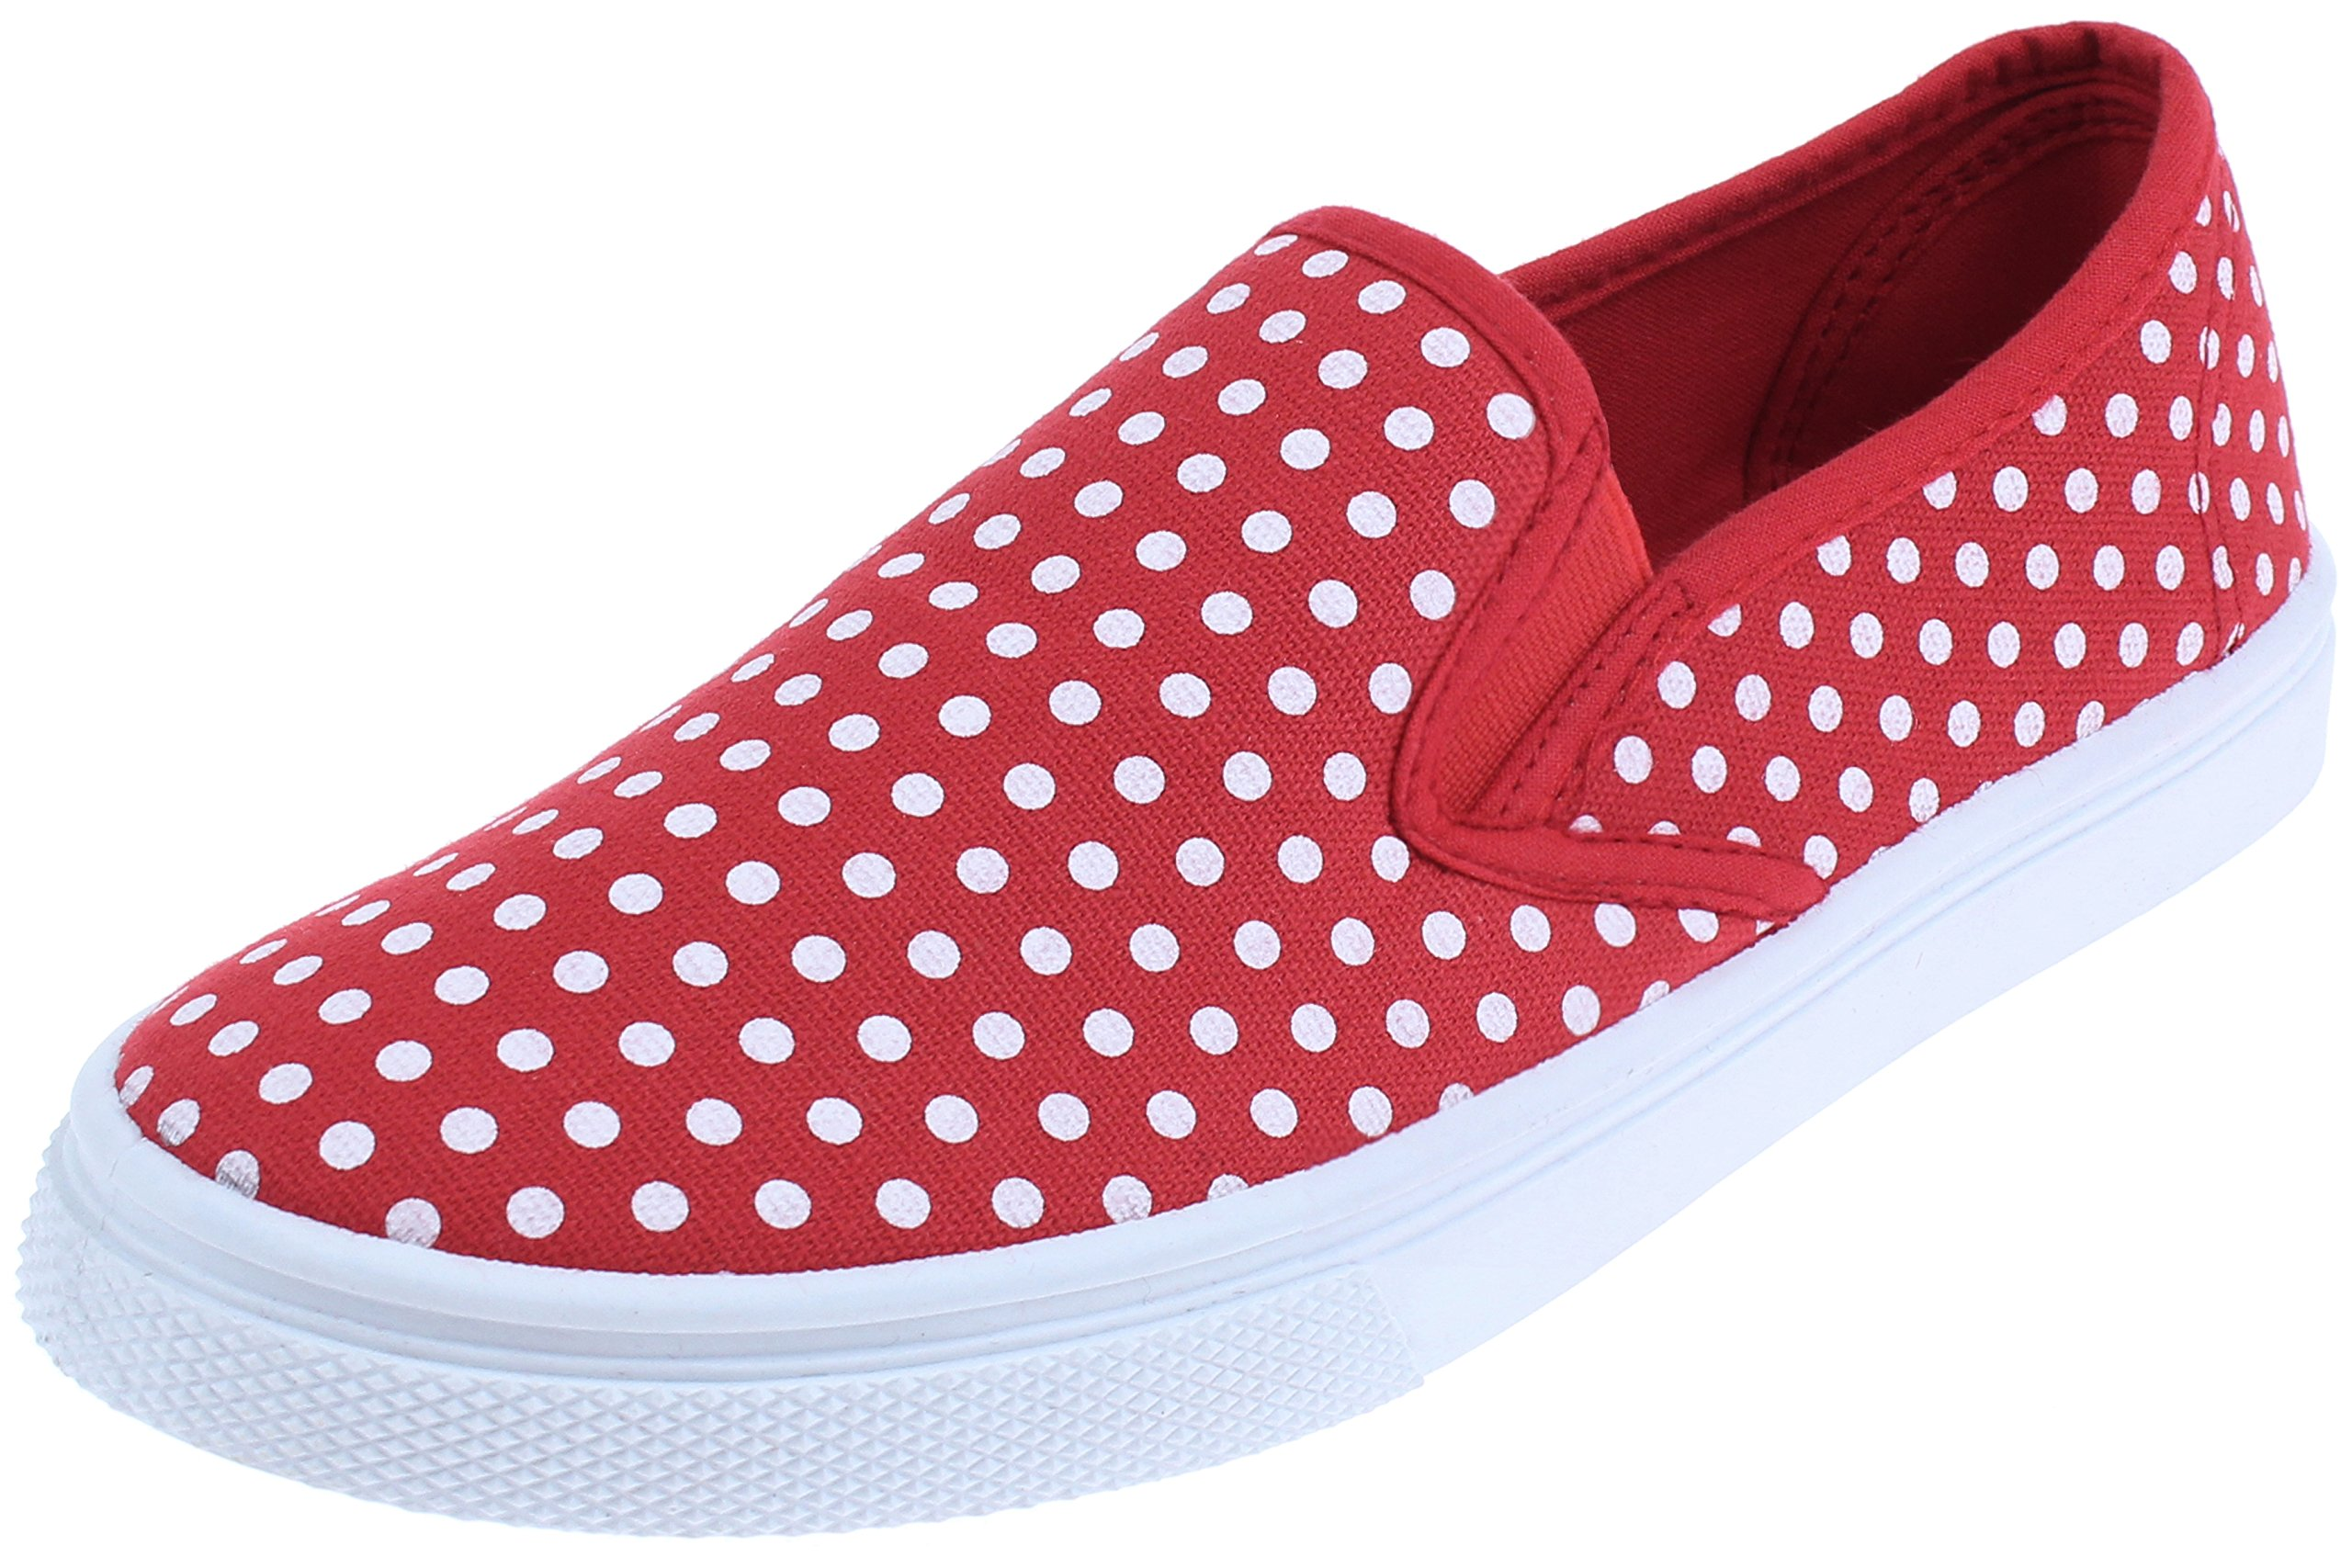 Capelli New York Ladies Polka Dot Printed Slip-On Shoes Red 7